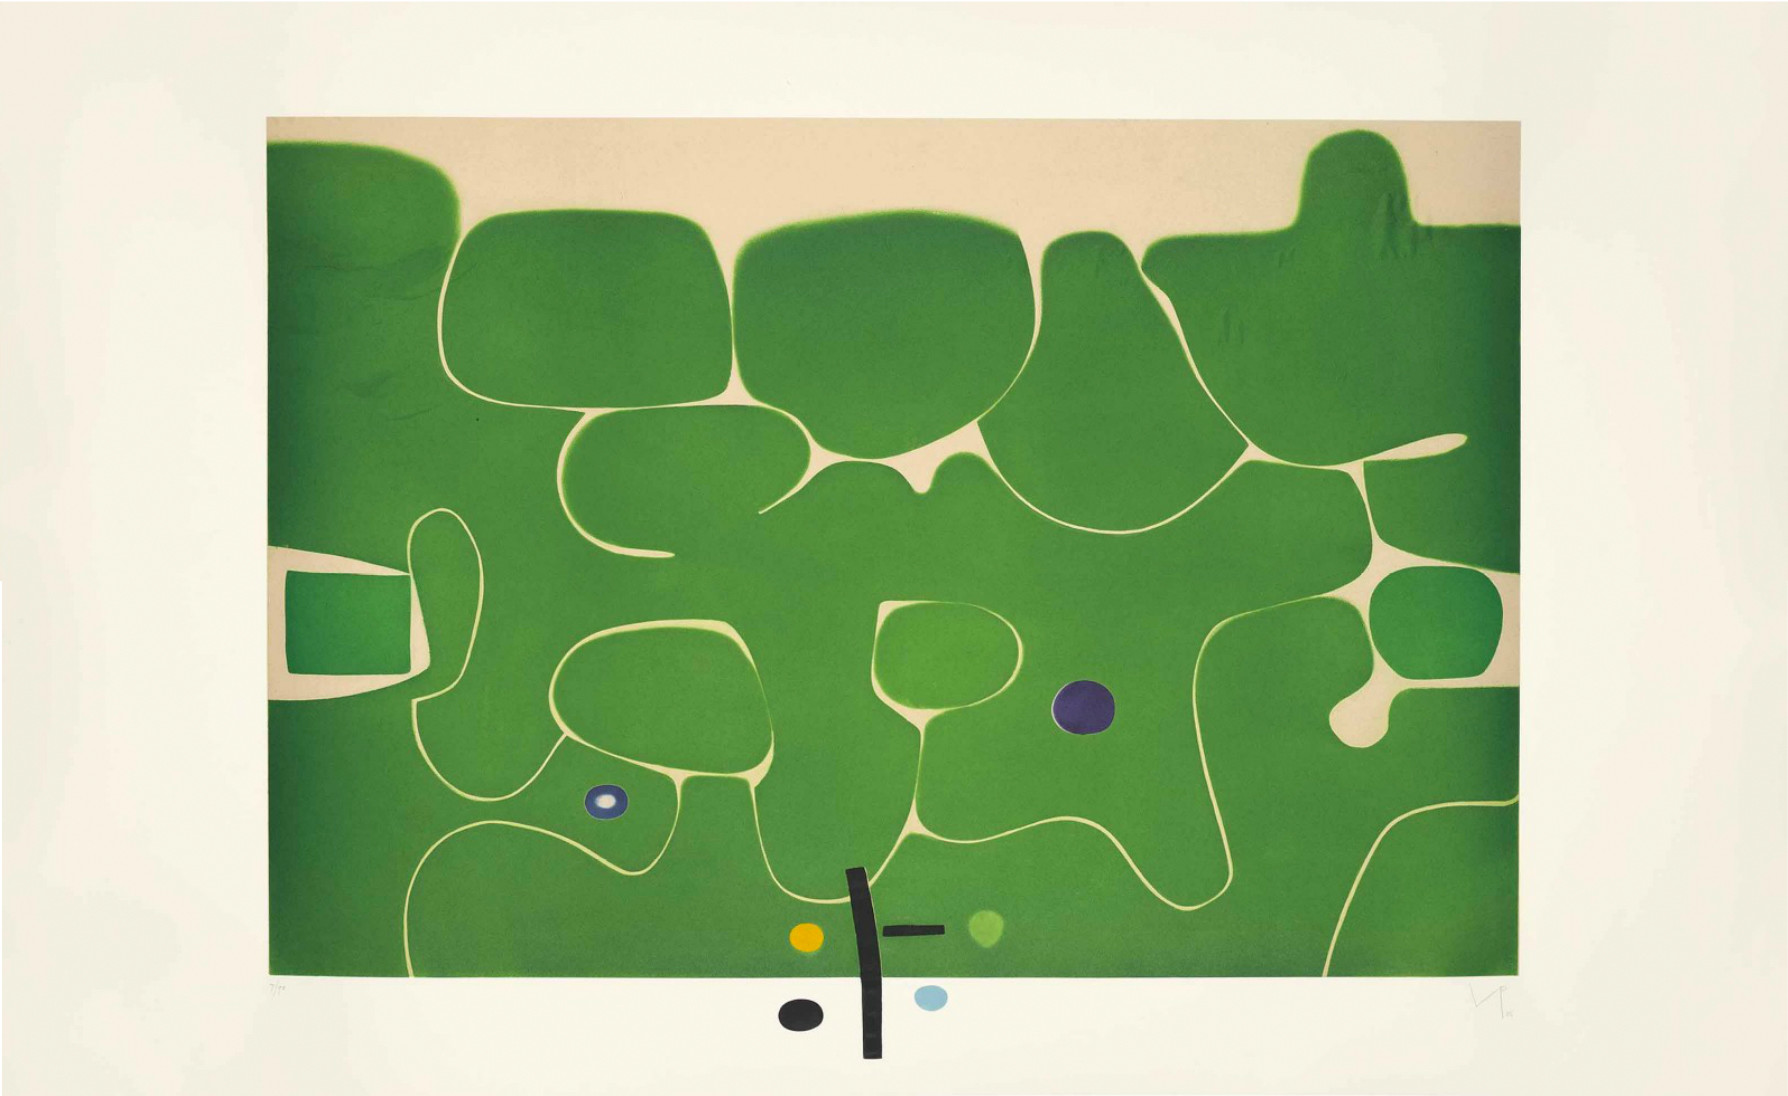 "<span class=""link fancybox-details-link""><a href=""/artists/84-victor-pasmore-ch-cbe/works/3803-victor-pasmore-ch-cbe-il-labirinto-della-psiche-1986/"">View Detail Page</a></span><div class=""artist""><strong>Victor Pasmore CH CBE</strong></div> 1908–1998 <div class=""title""><em>Il Labirinto della Psiche</em>, 1986</div> <div class=""signed_and_dated"">initialled and dated in pencil</div> <div class=""medium"">etching and aquatint printed in colours, on Fabriano paper</div> <div class=""dimensions"">plate size: 76 x 111 cm<br /> sheet size: 159.7 x 98.5 cm</div> <div class=""edition_details"">7/90, aside from 15 Artist's Proofs</div><div class=""copyright_line"">© The Estate of Victor Pasmore</div>"